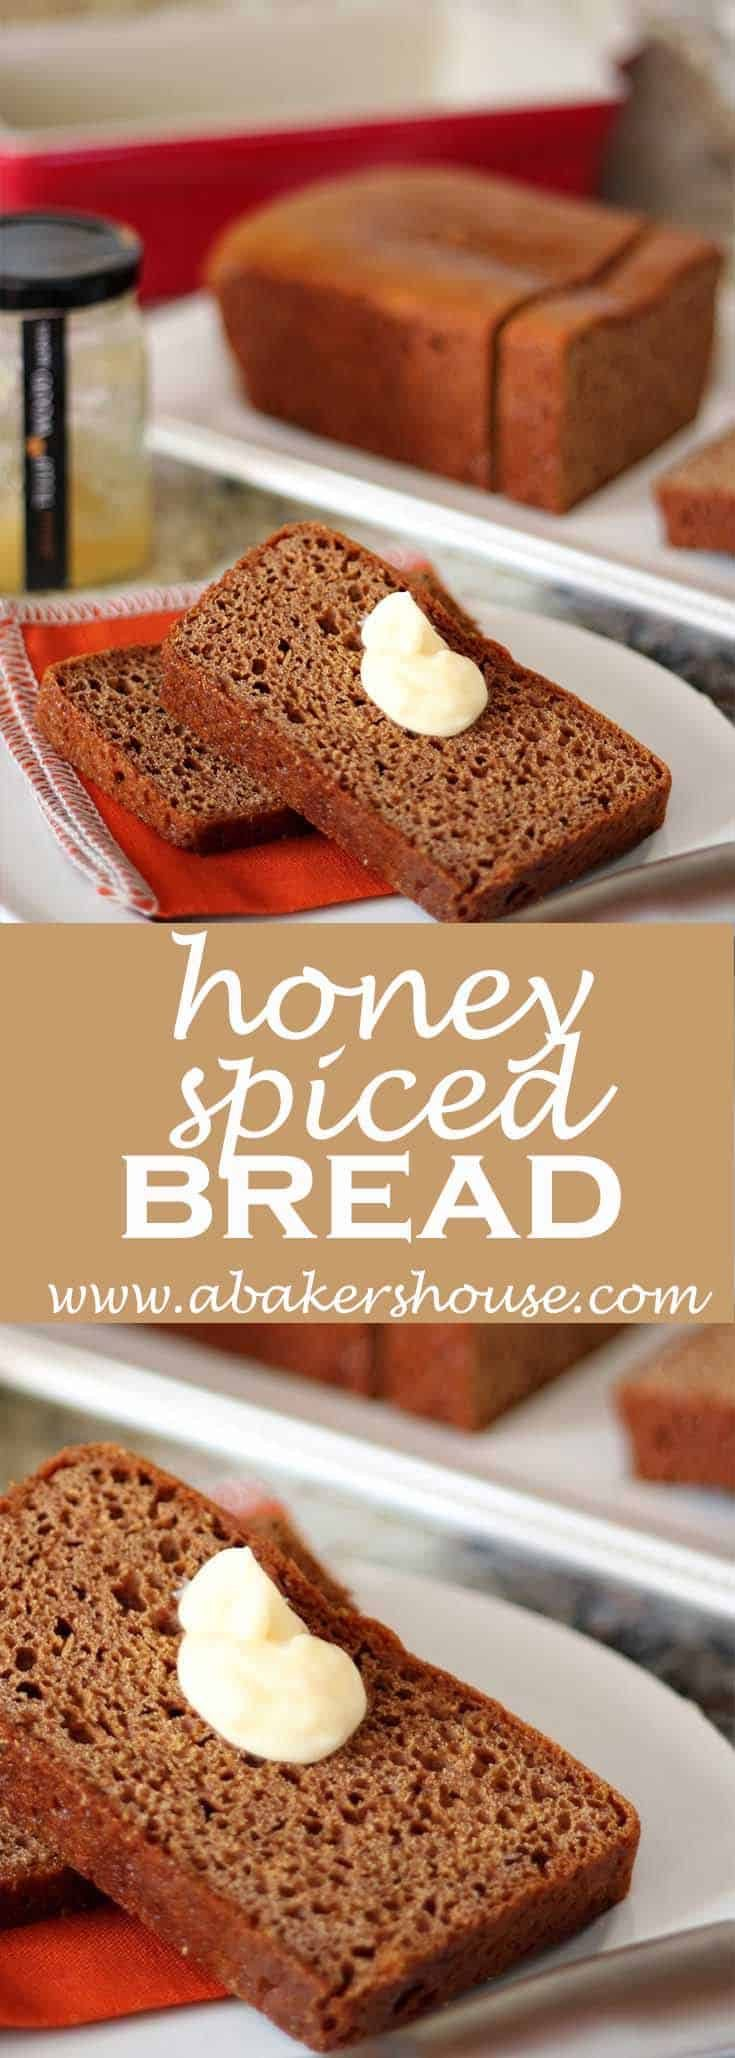 Can you smell my Honey Spice Bread this month? The spices of cinnamon, ginger, pepper, and fennel seed combine with the sweetness of the honey to create a deepness of flavor not often found in a quick bread. Part of the magic must be due to the cooking method of baking at a low temperature for a long time. #abakershouse #honeybread #spices #spicedbread